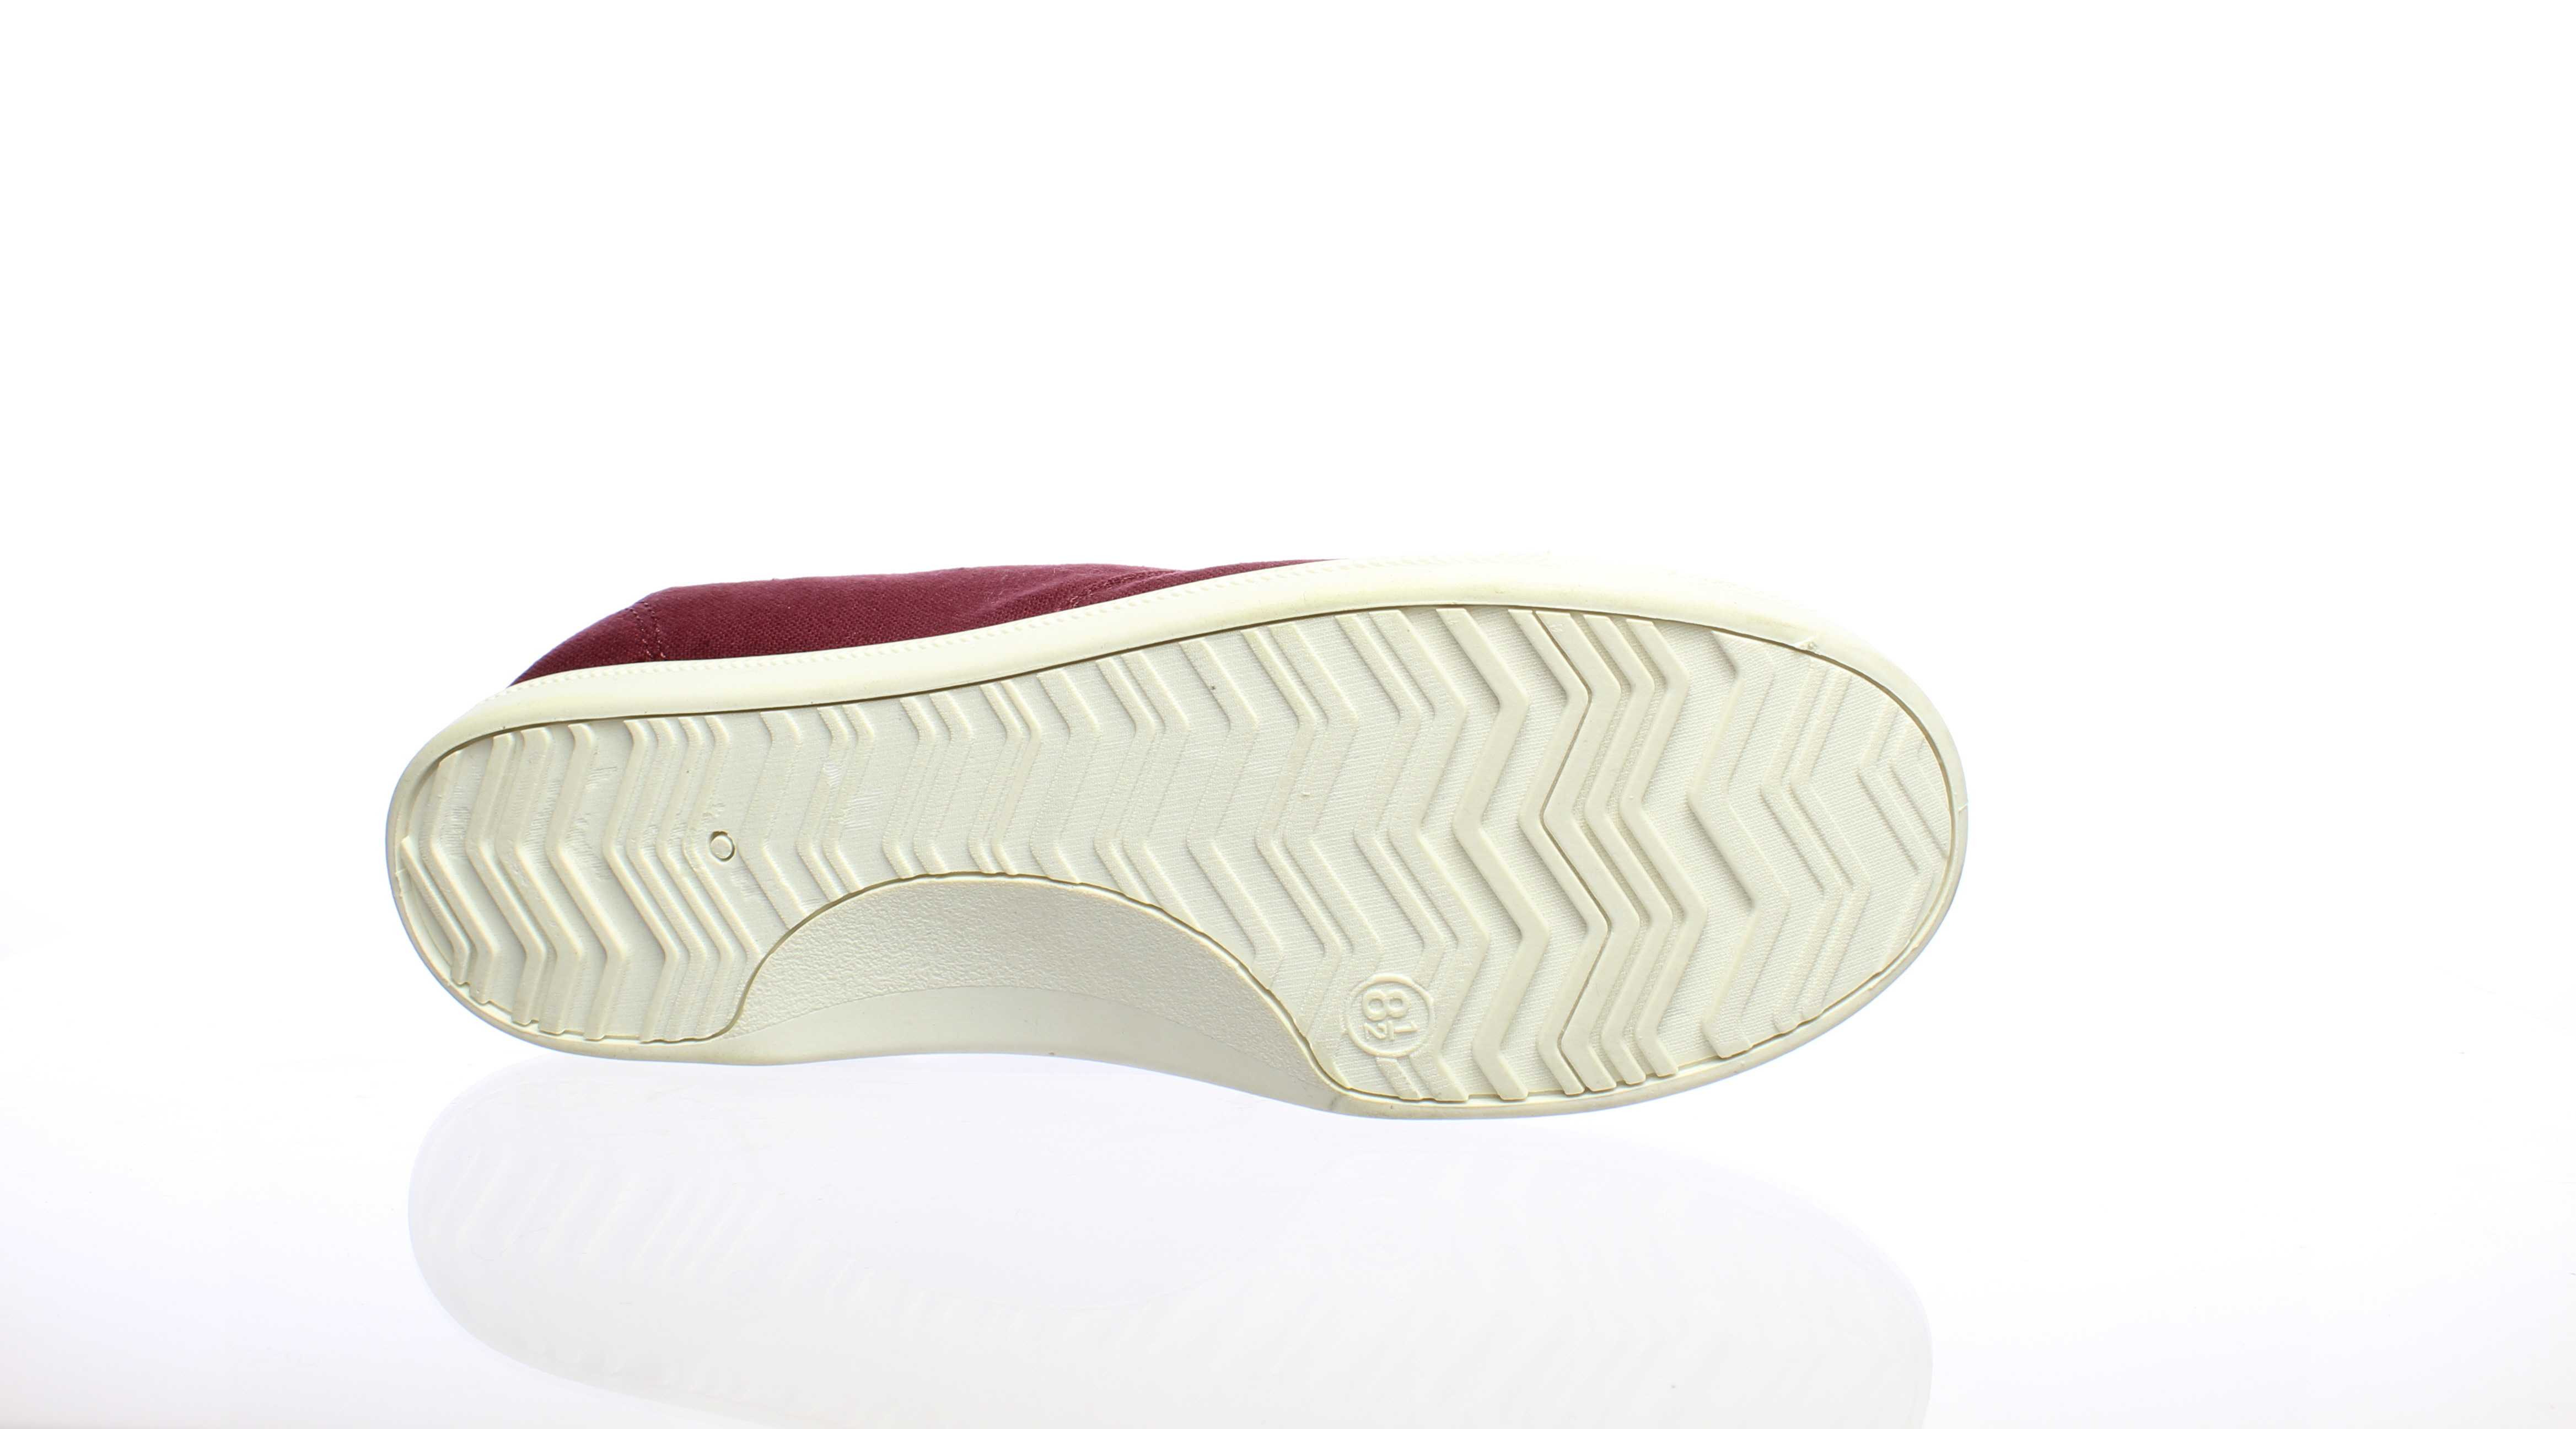 fd1c1fdf37ef9 Details about Madden Girl Womens Brrookee Burgundy Fabric Fashion Sneaker  Size 8.5 (309098)